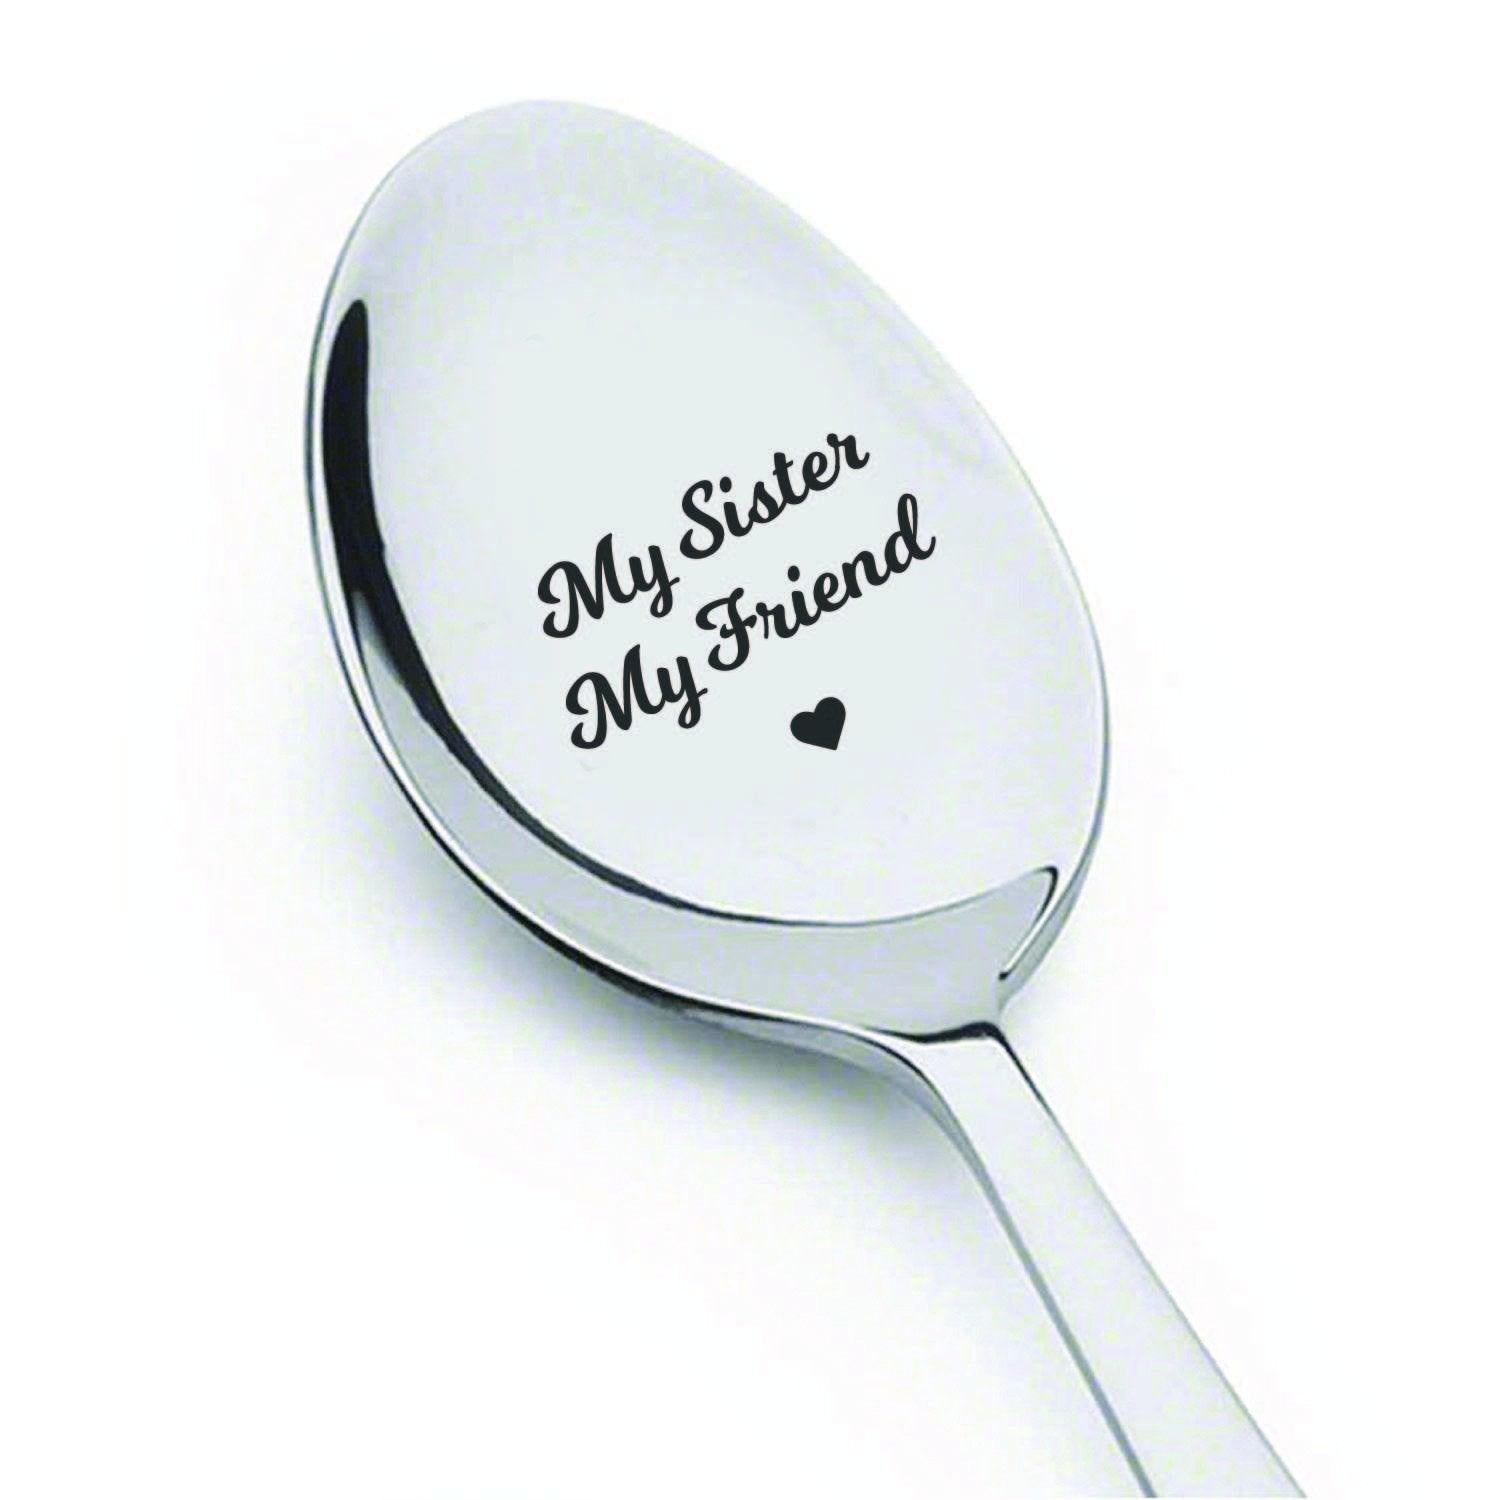 Best friend gifts - Big Sister gifts - My sister my friend spoon - Engraved spoons - Sister in law gifts - Birthday gifts for sister - Sister wedding gifts - Gift ideas - Coffee spoon - 7 Inches - BOSTON CREATIVE COMPANY